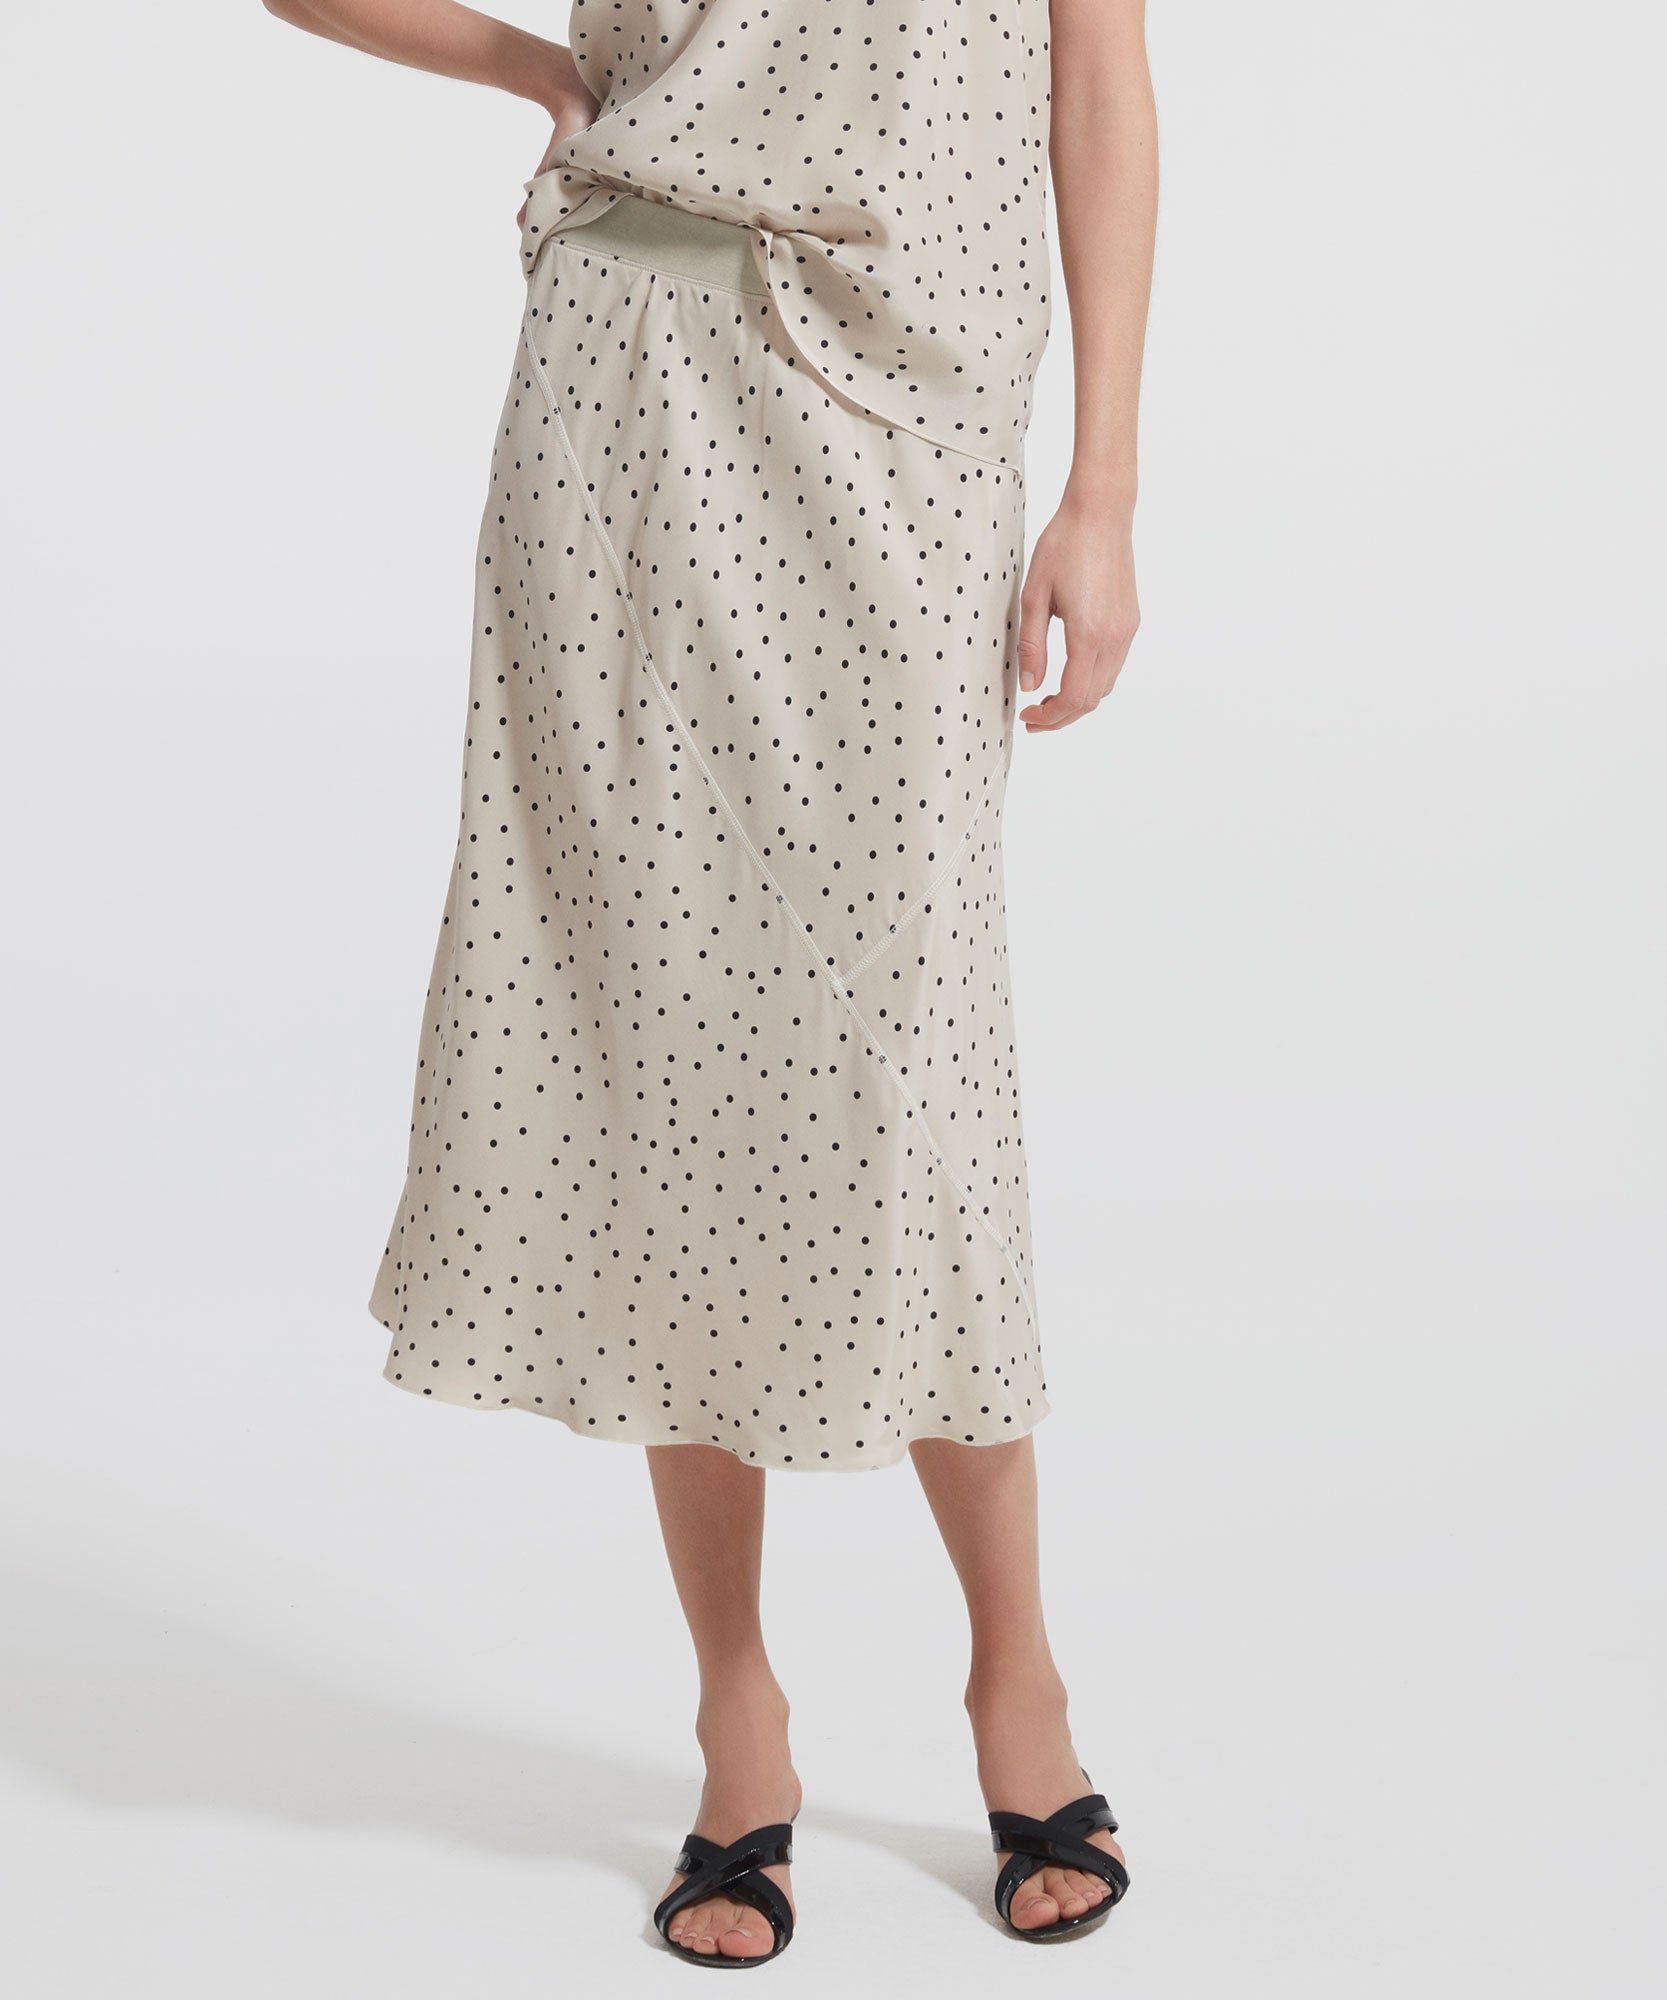 Soil Polka Dot Silk Skirt - Women's Skirt by ATM Anthony Thomas Melillo